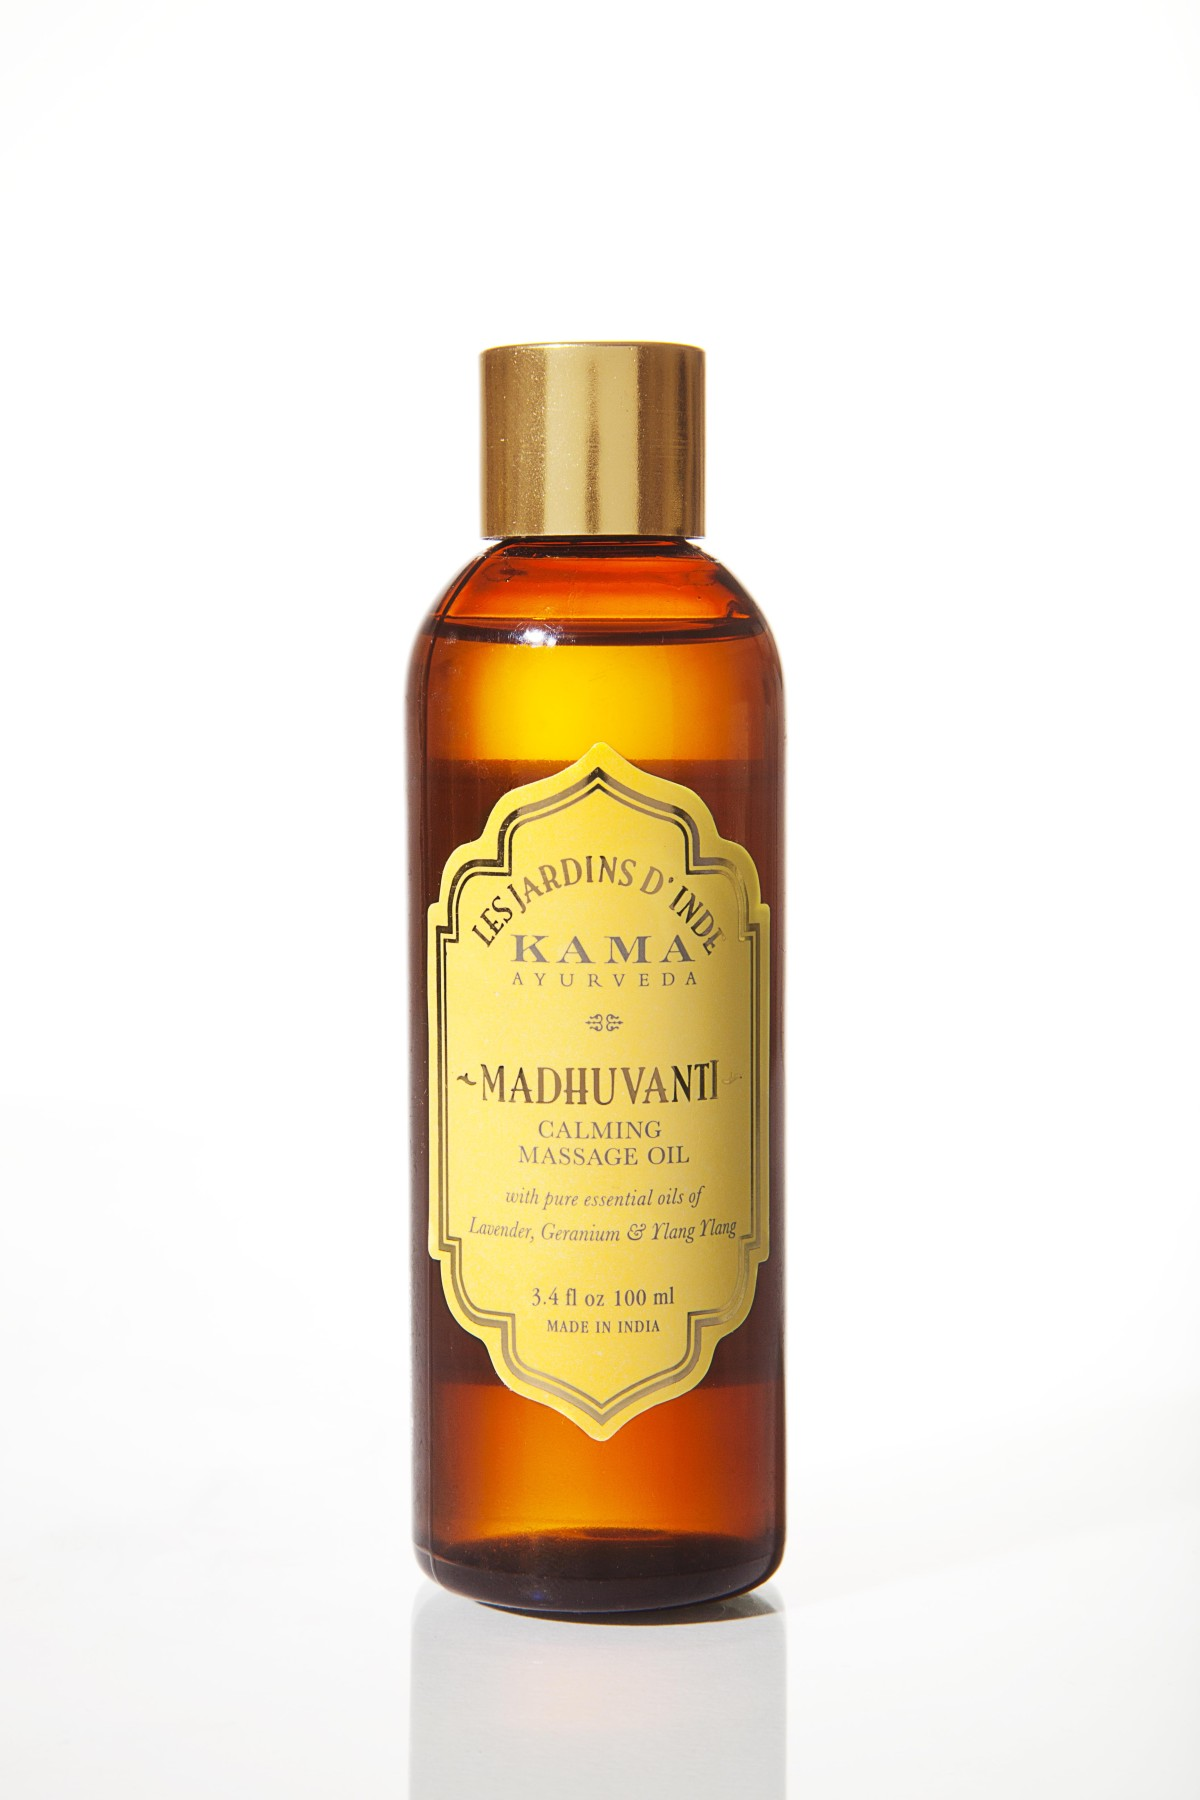 Madhuvanti Calming Massage Oil